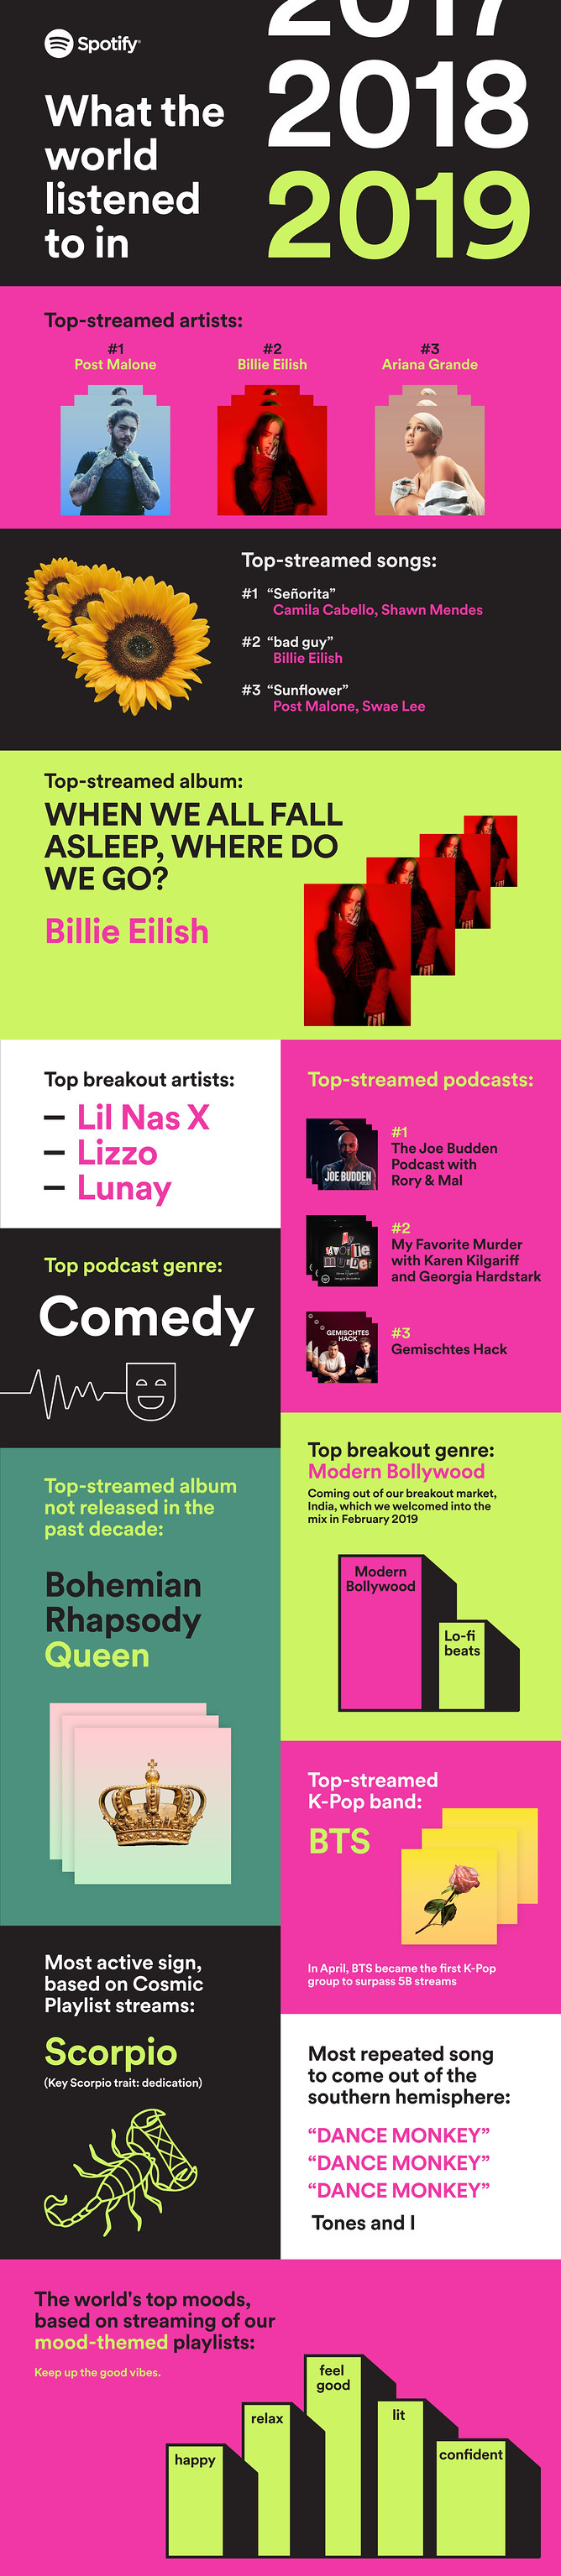 Spotify_Wrapped_2019_Infographic En